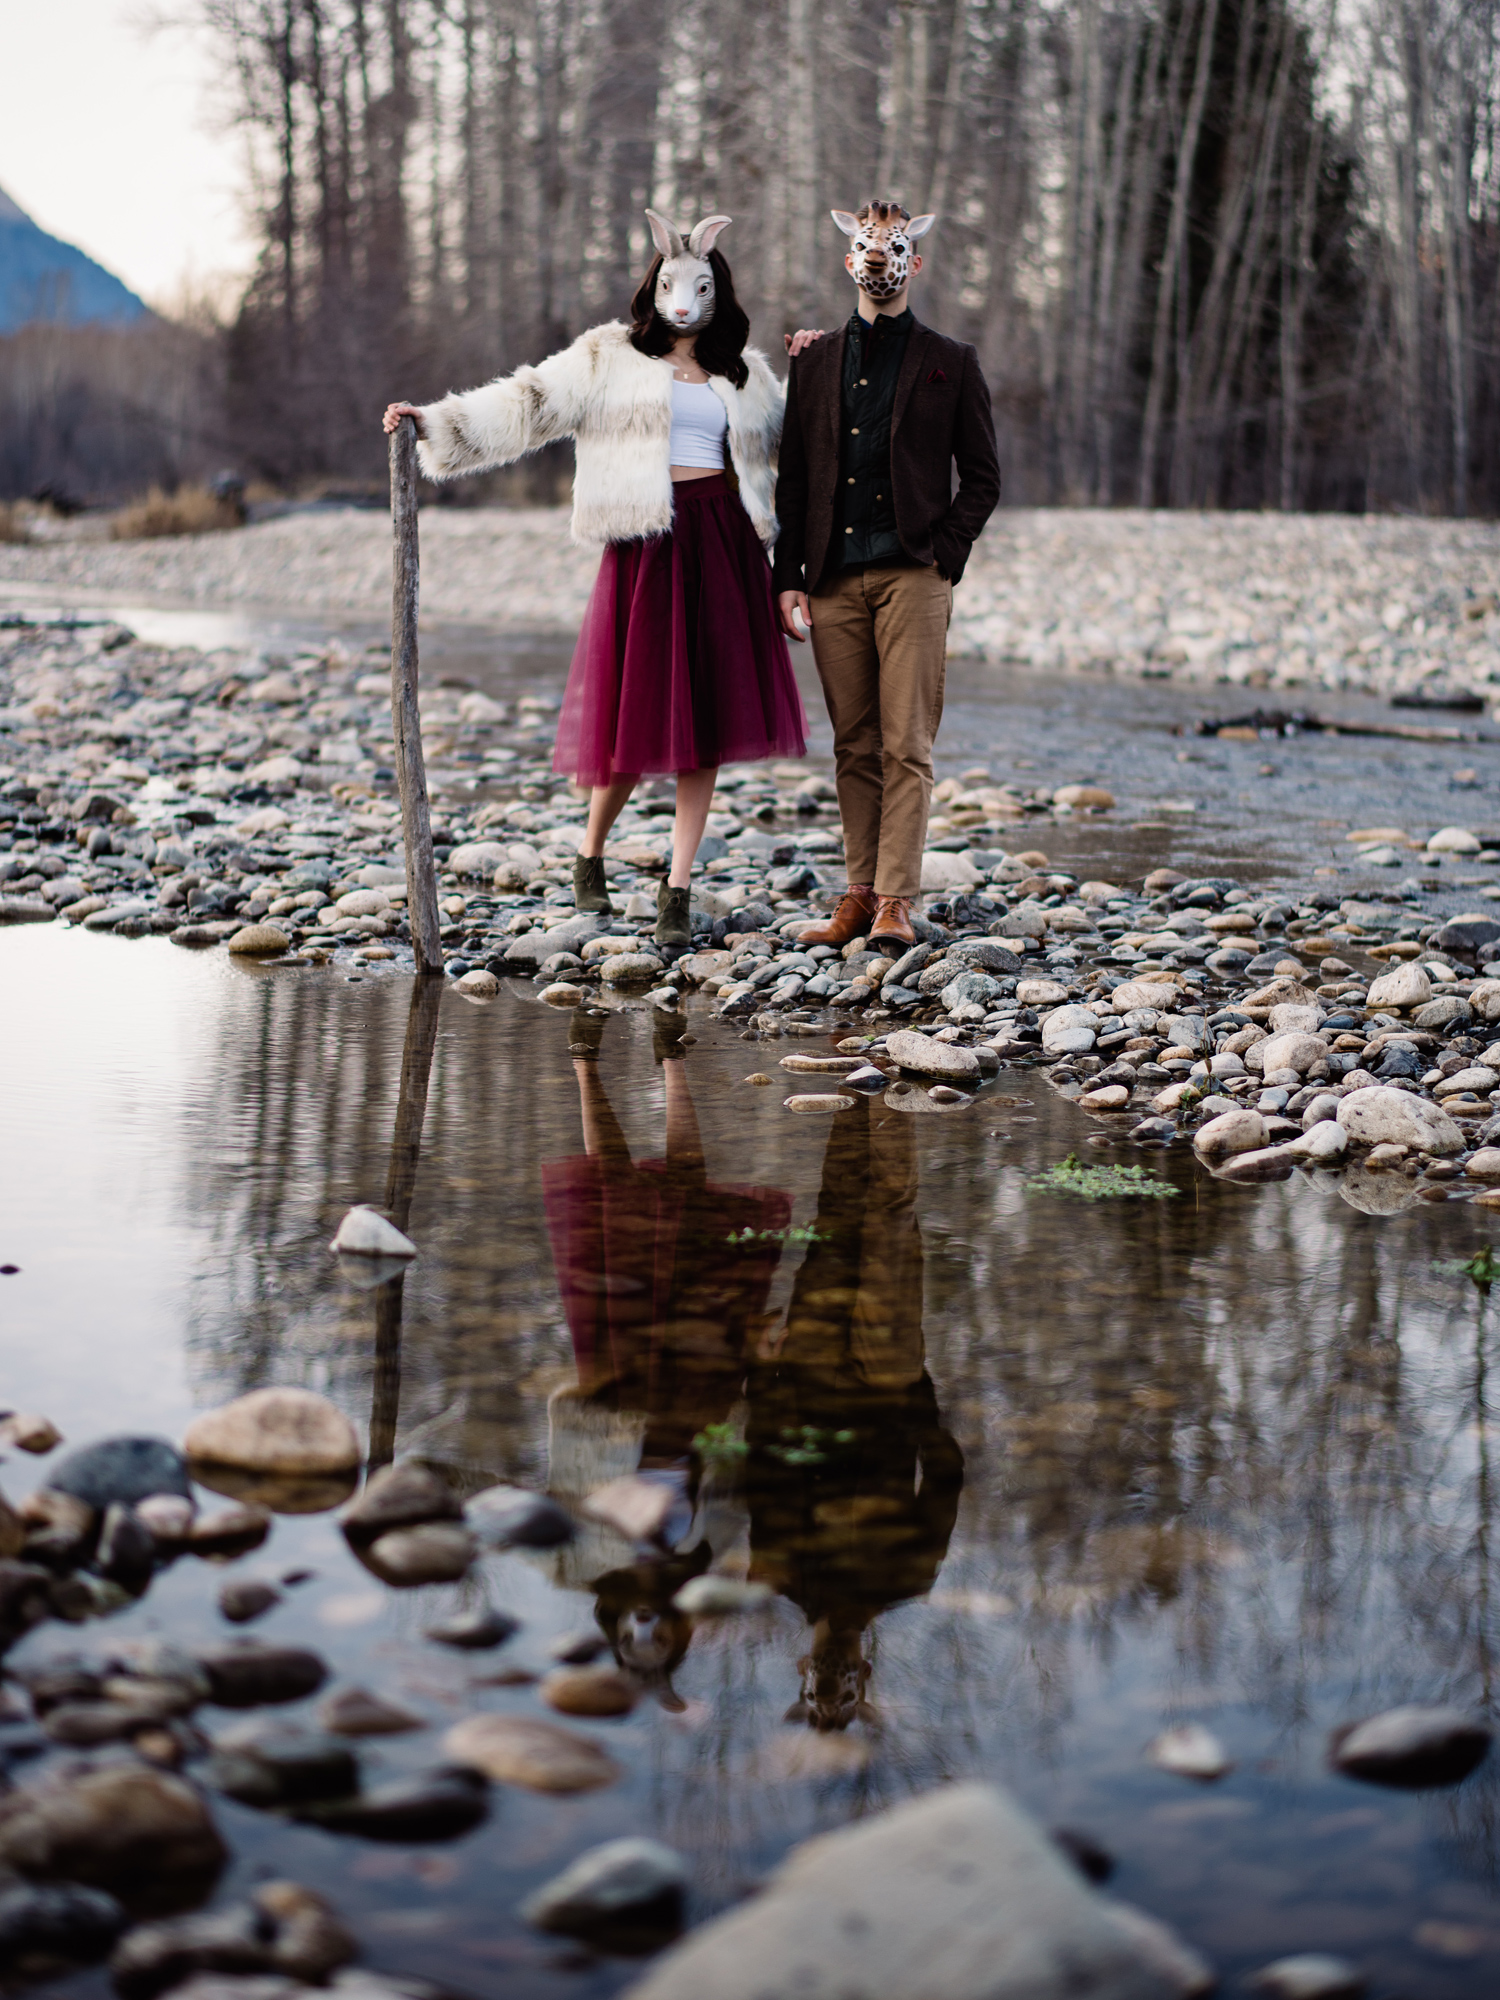 methow-valley-wedding-photographer-flynn-0006.JPG